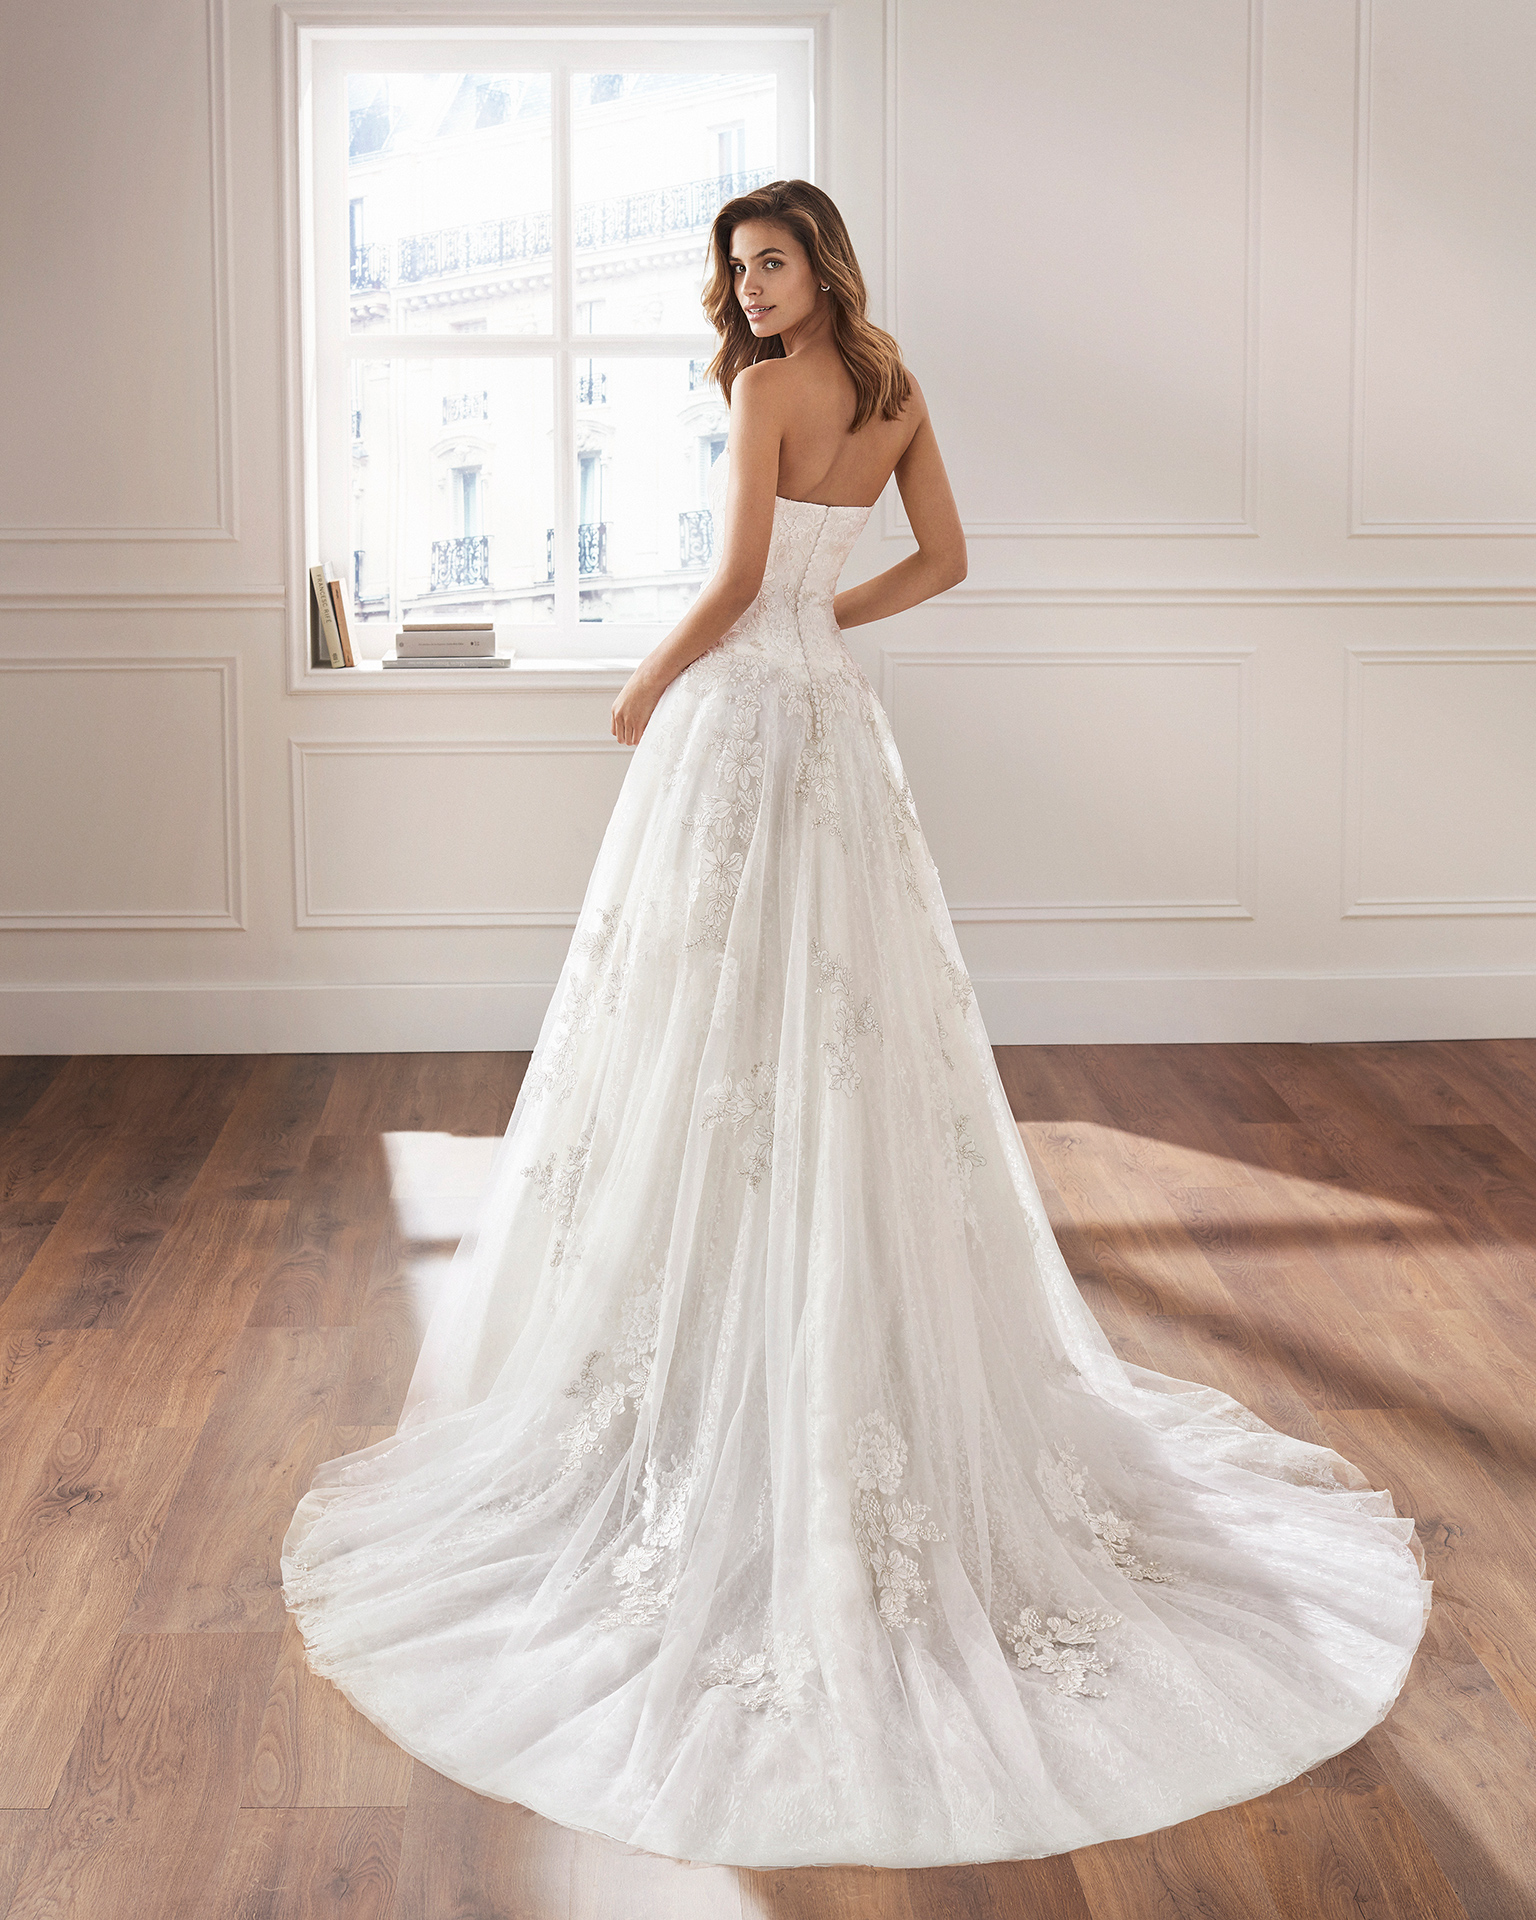 Ballgown-style wedding dress in lace. Sweetheart neckline, straps and appliquéd skirt. Available in natural. 2019  Collection.